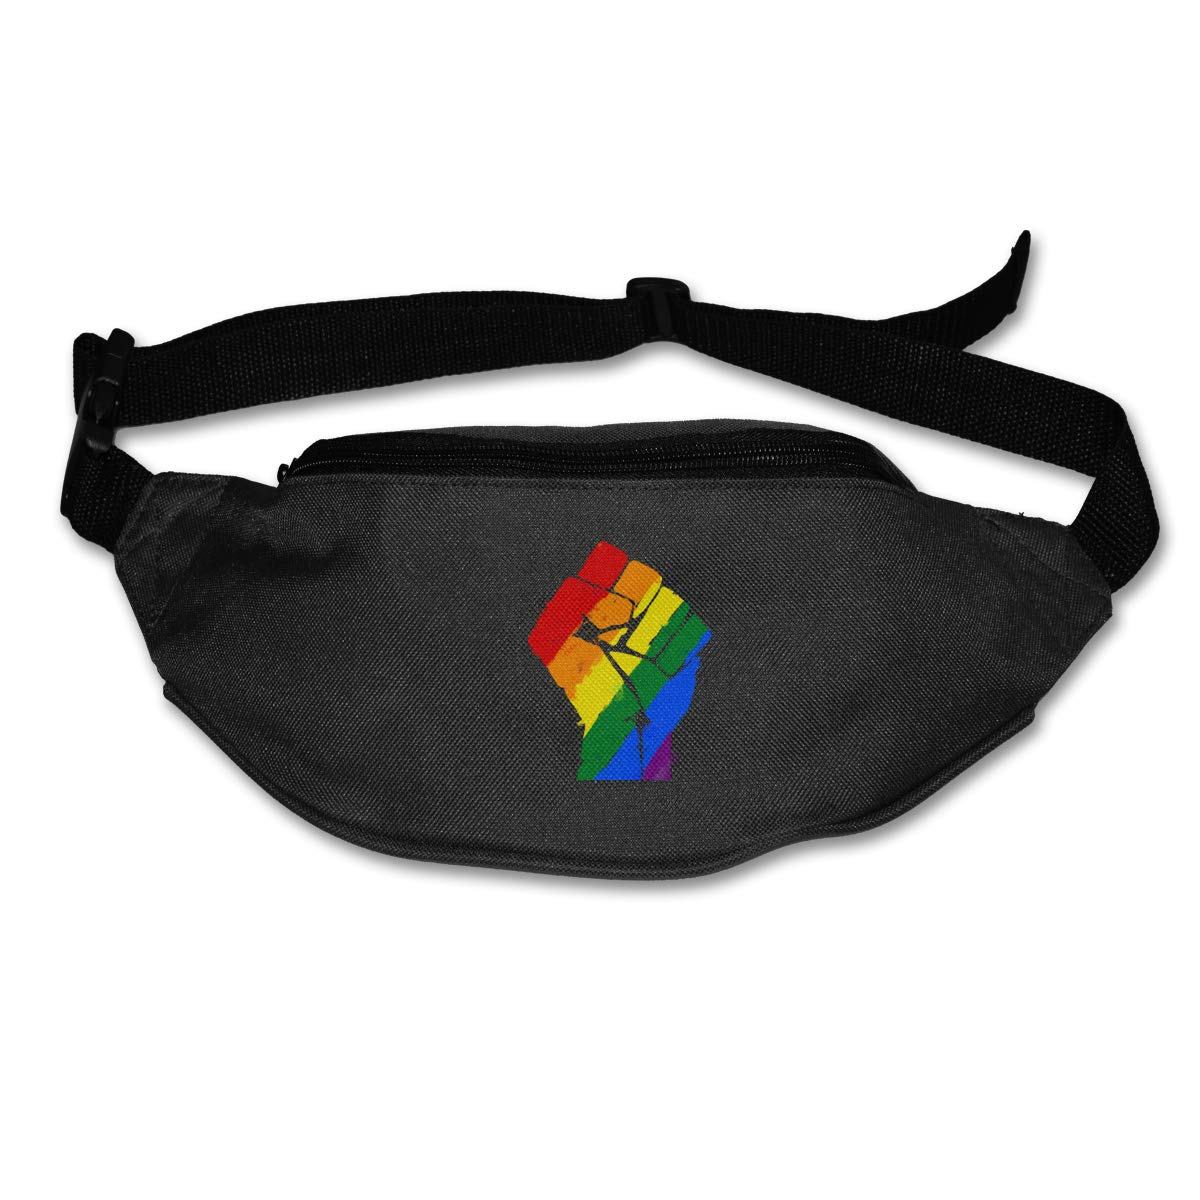 LGBT Pride Rainbow Flag Fist Sport Waist Pack Fanny Pack Adjustable For Run